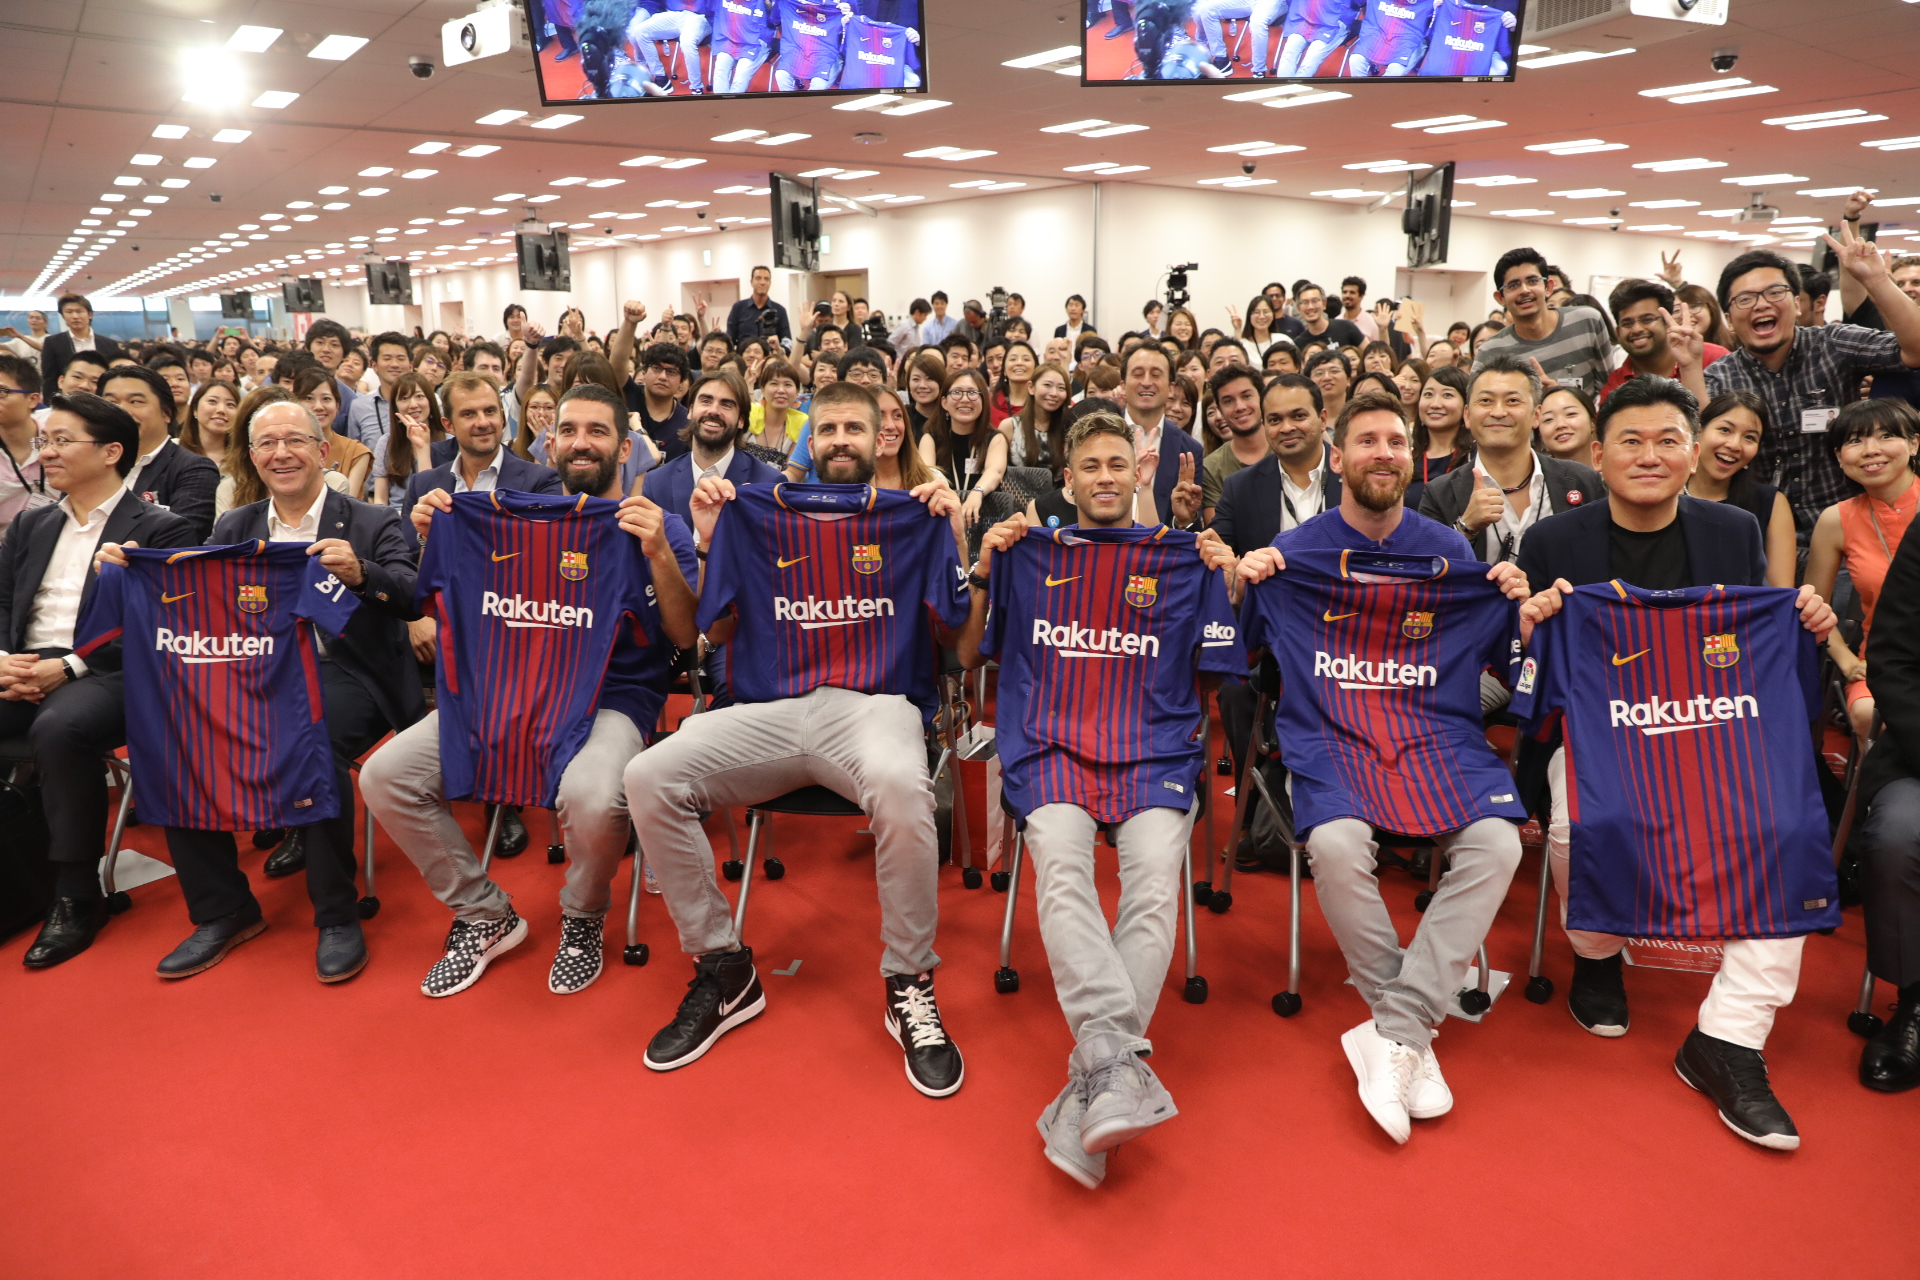 Messi, Neymar Jr., Pique and Turan put on a show for employees during visit to Rakuten headquarters